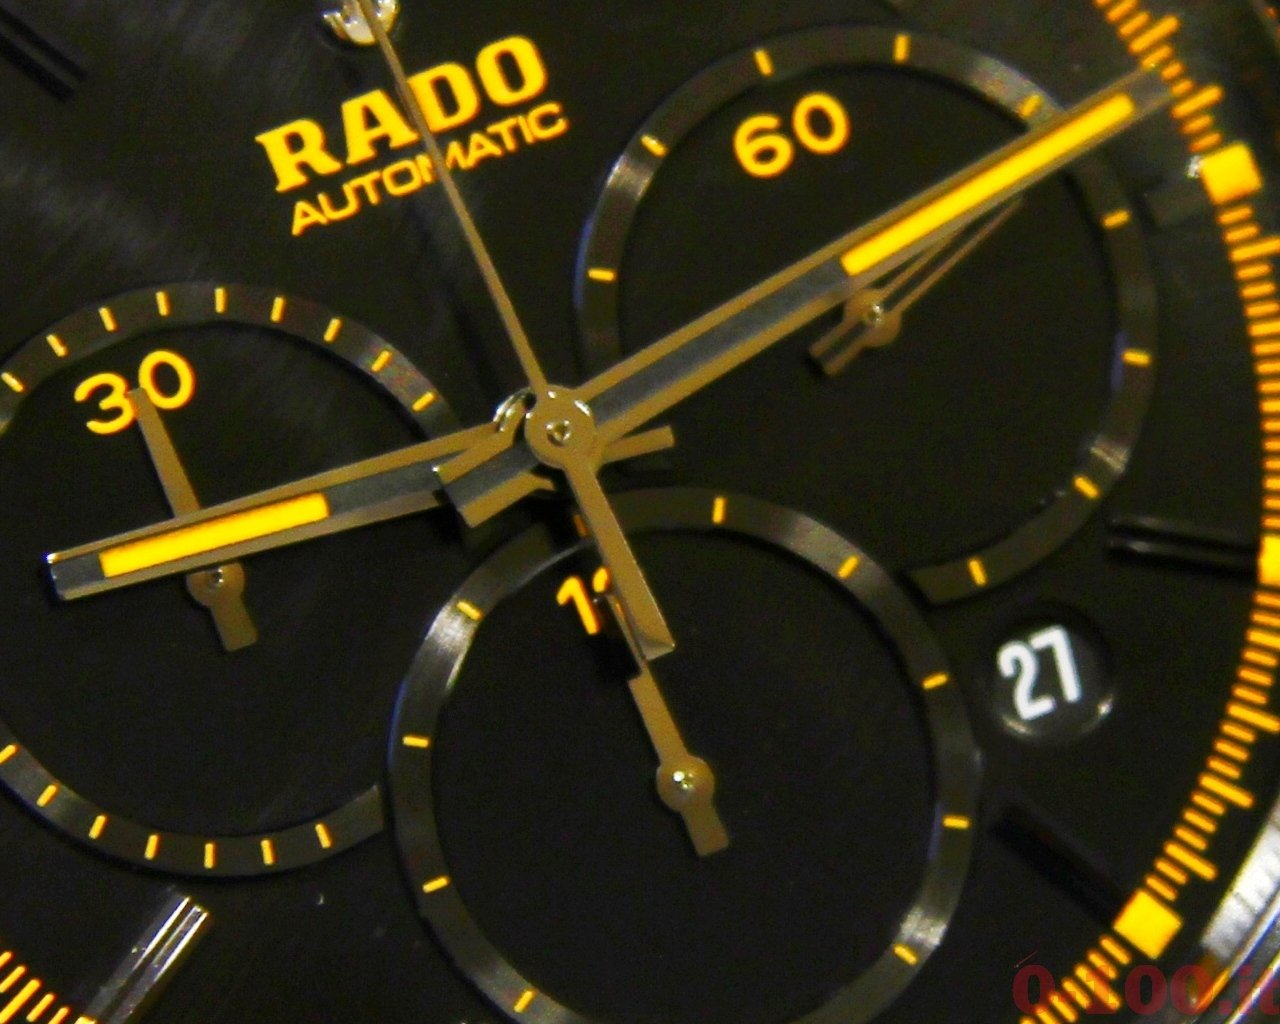 watch-test-rado-hyperchrome-automatic-chronograph-plasma-ceramic-0-100_50